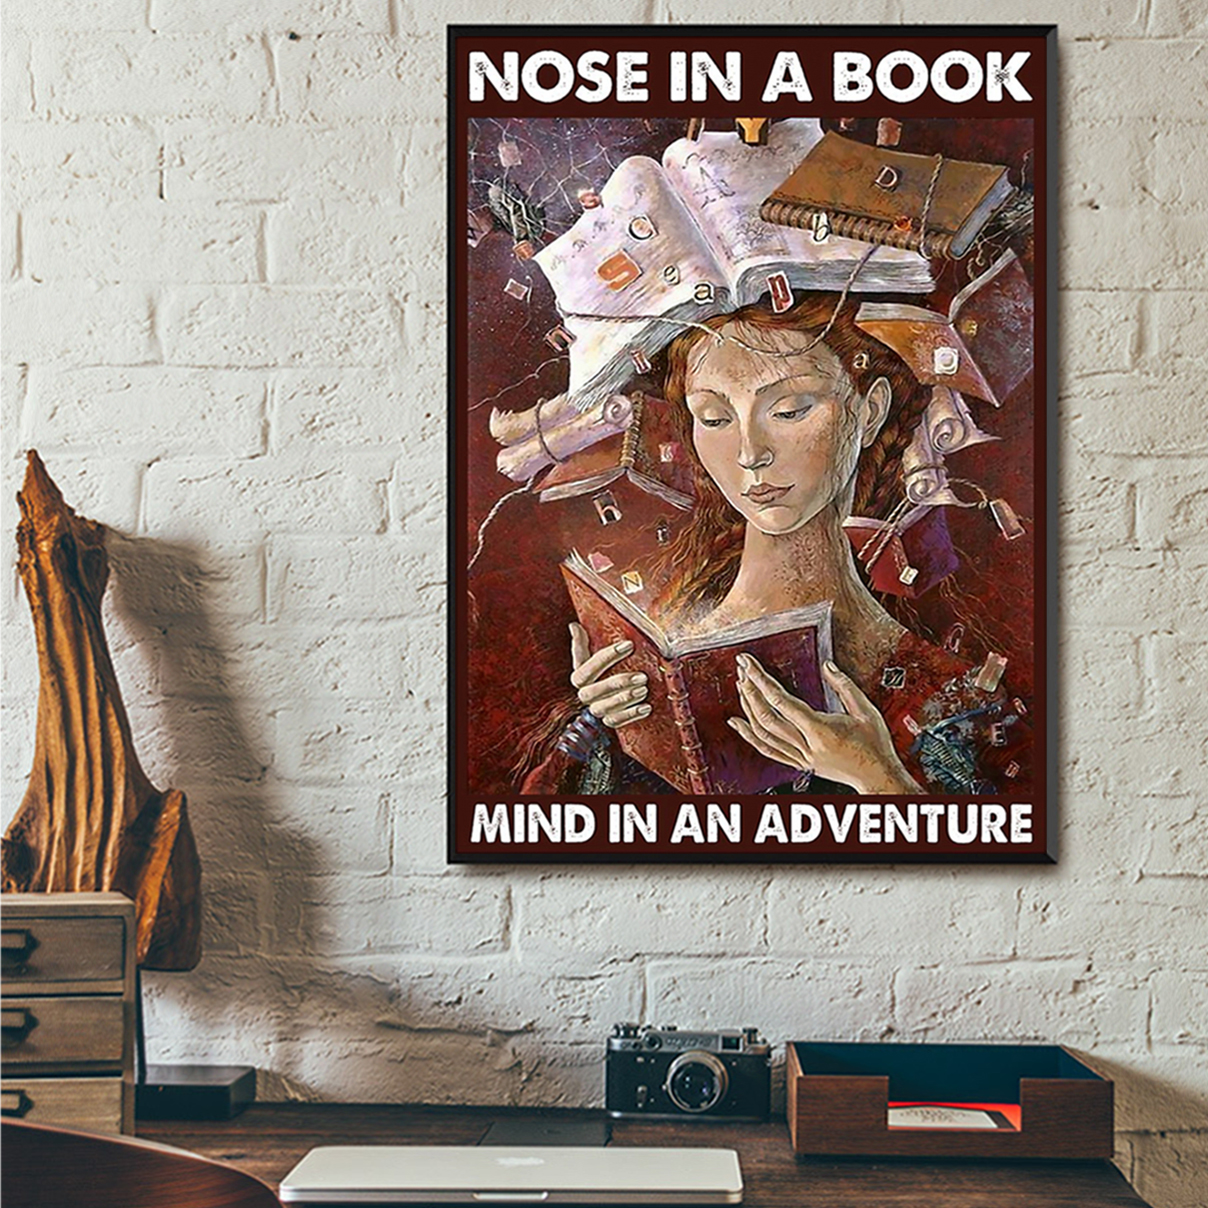 Nose in a book mind in an adventure poster A2